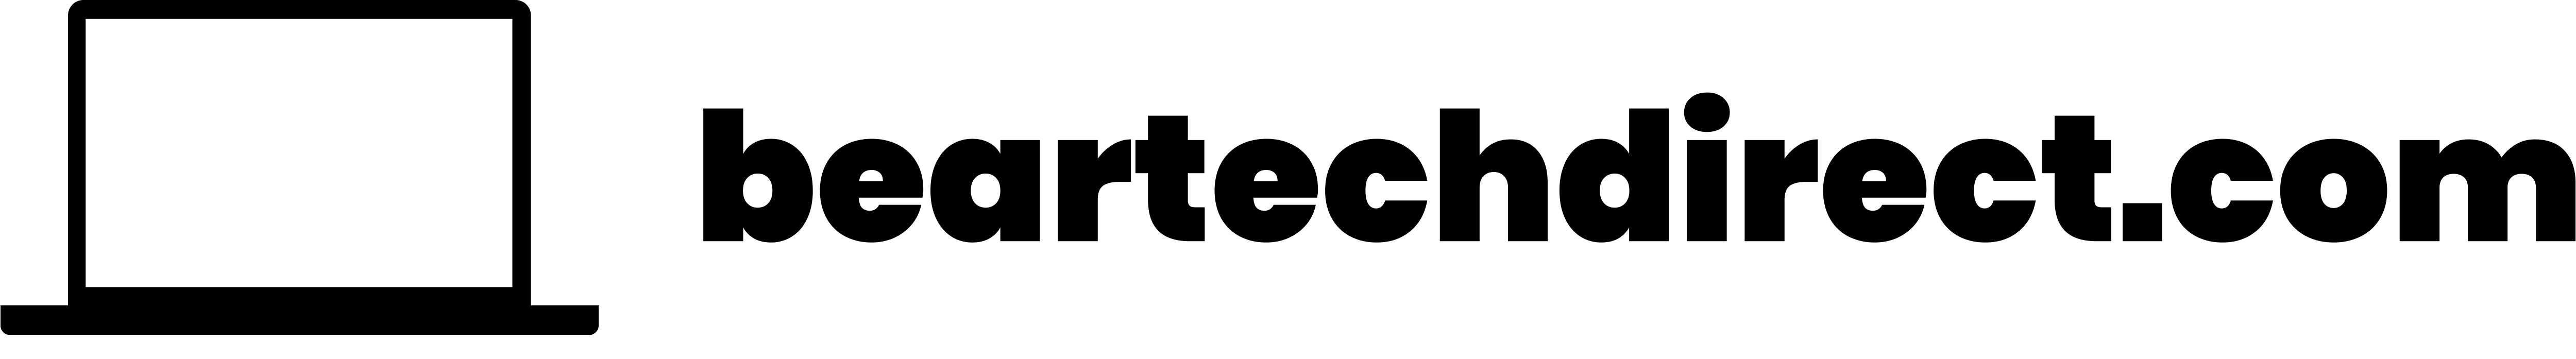 beartechdirect.com